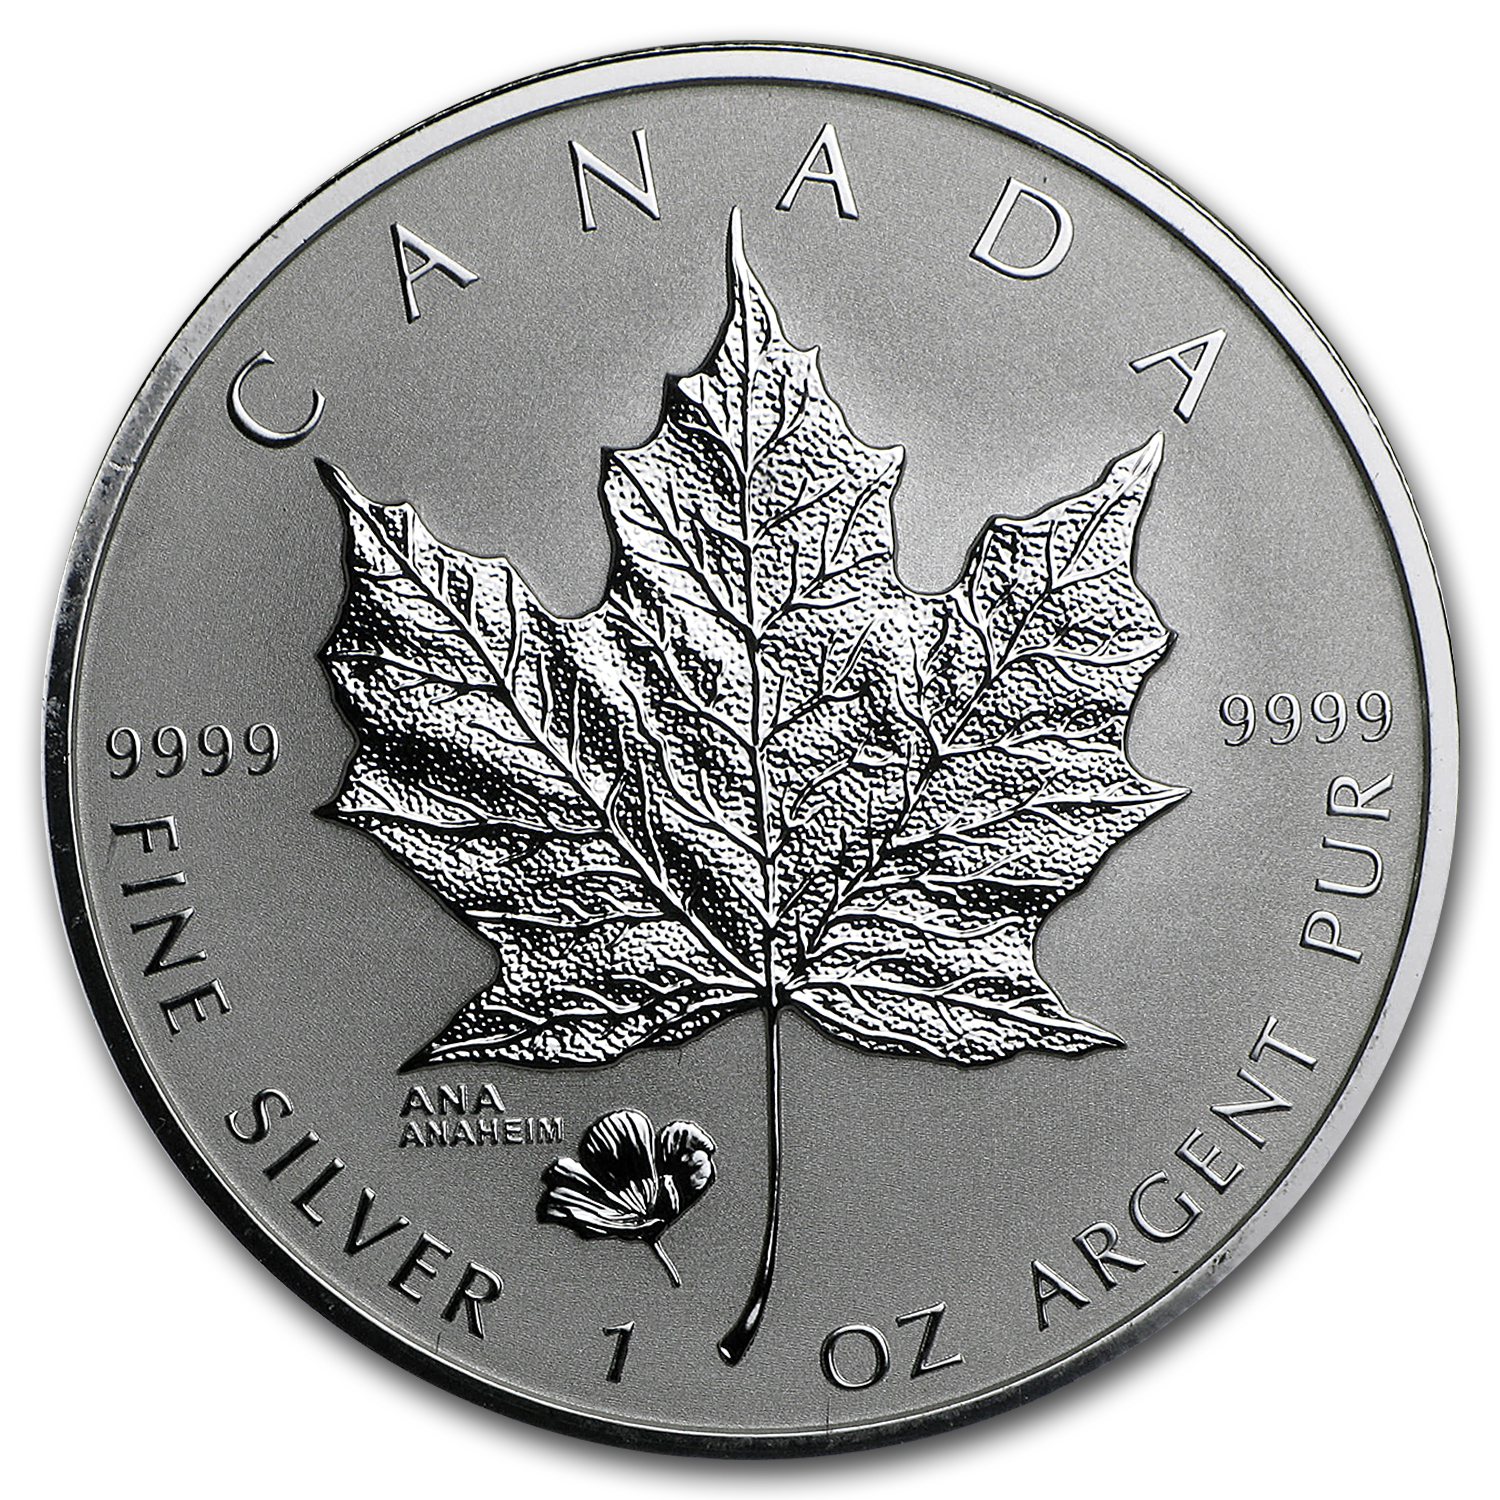 2016 Canada 1 oz Rev Proof Silver Maple Leaf ANA Privy Mark